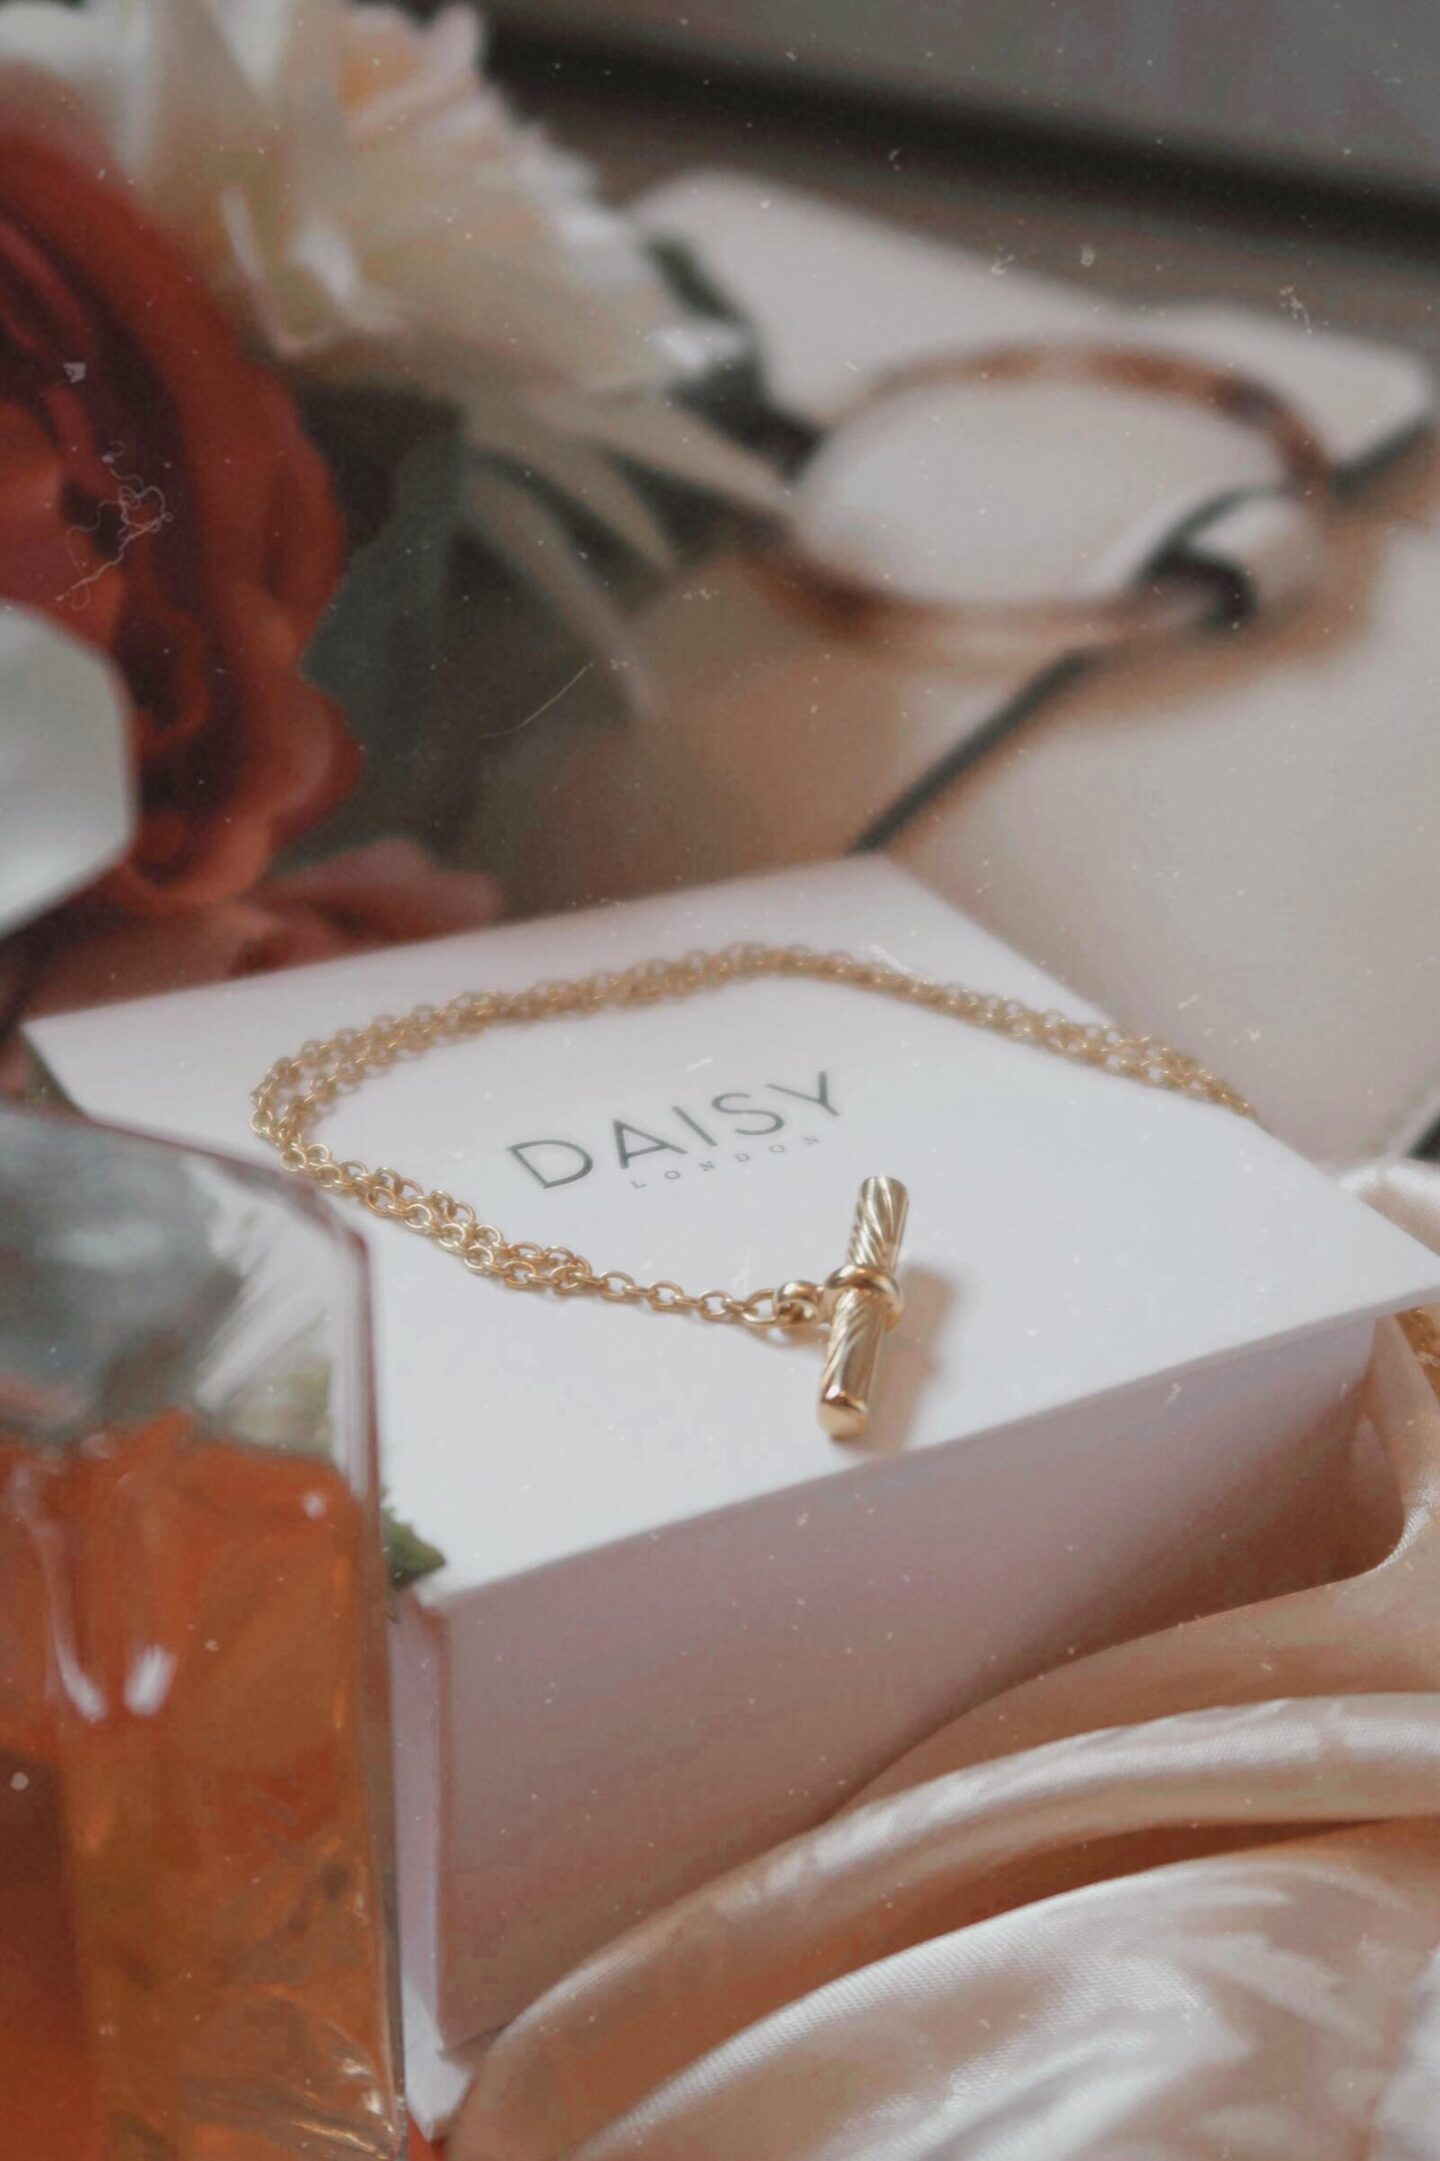 daisy london necklace